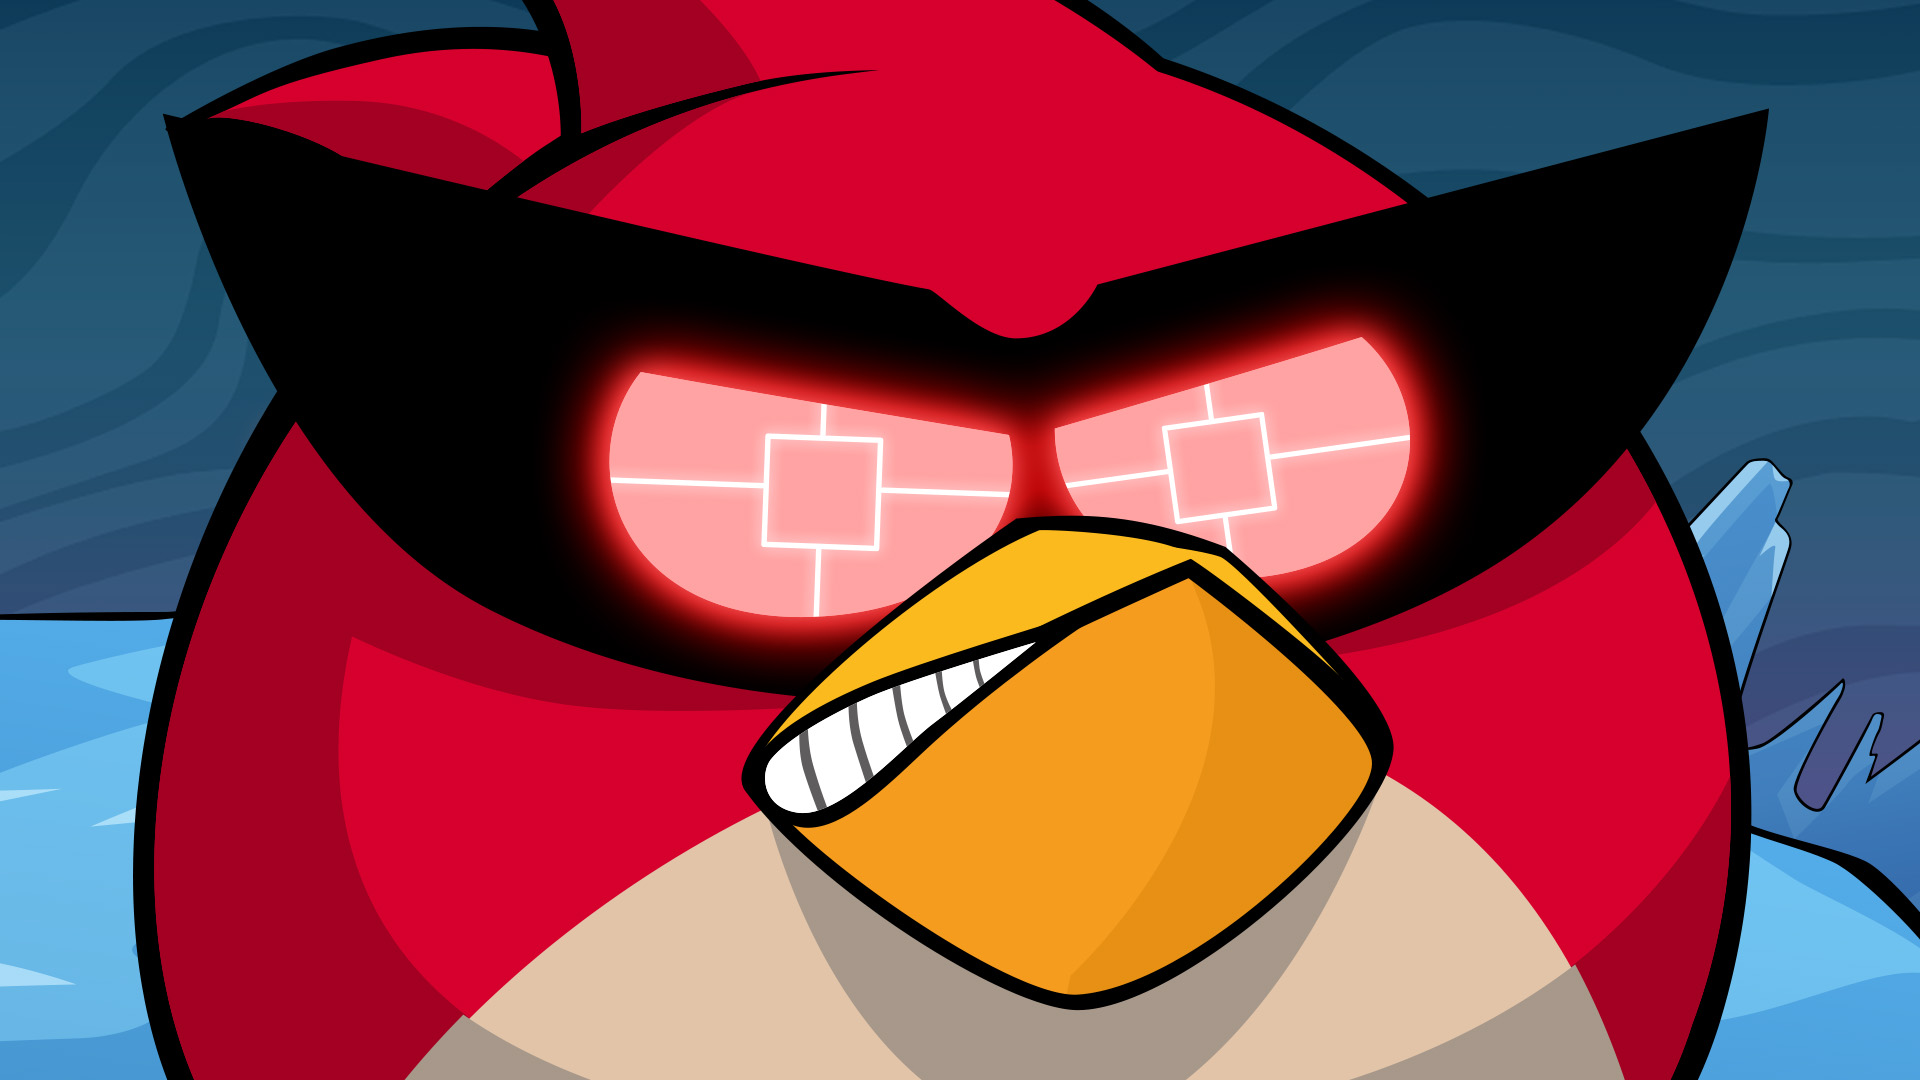 Blue Jay Clipart Angry - Angry Birds Blues Happy - Free ... | 1080x1920